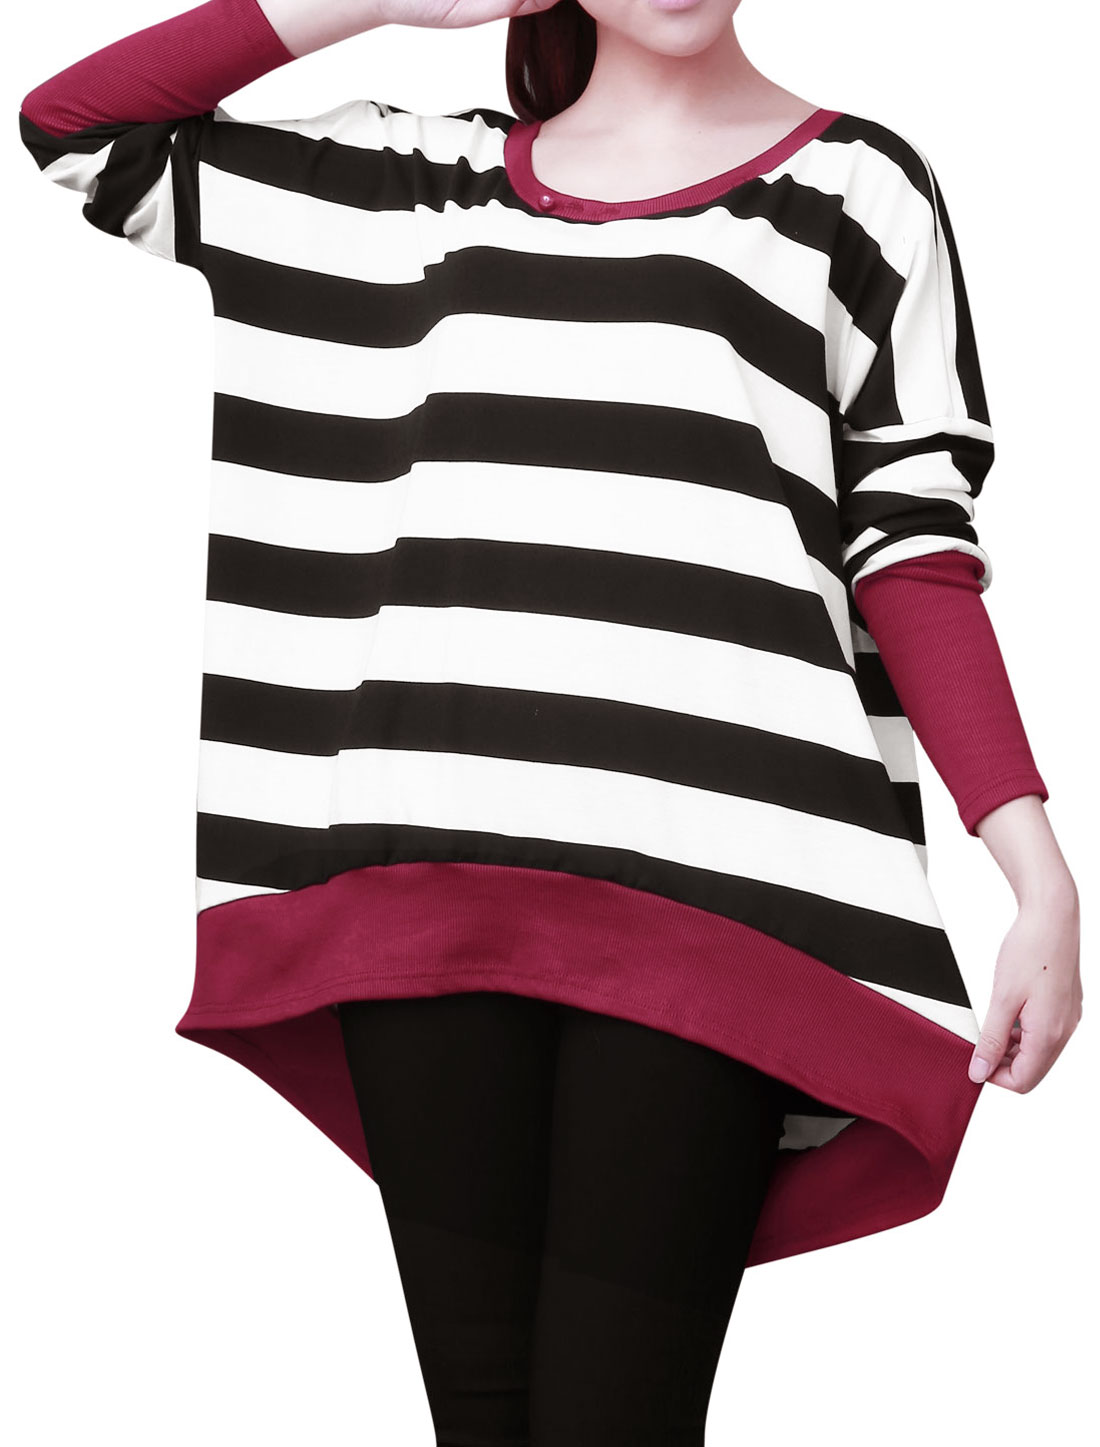 Korea Style Black White Bar Stripes Autumn Loose Shirt for Woman M